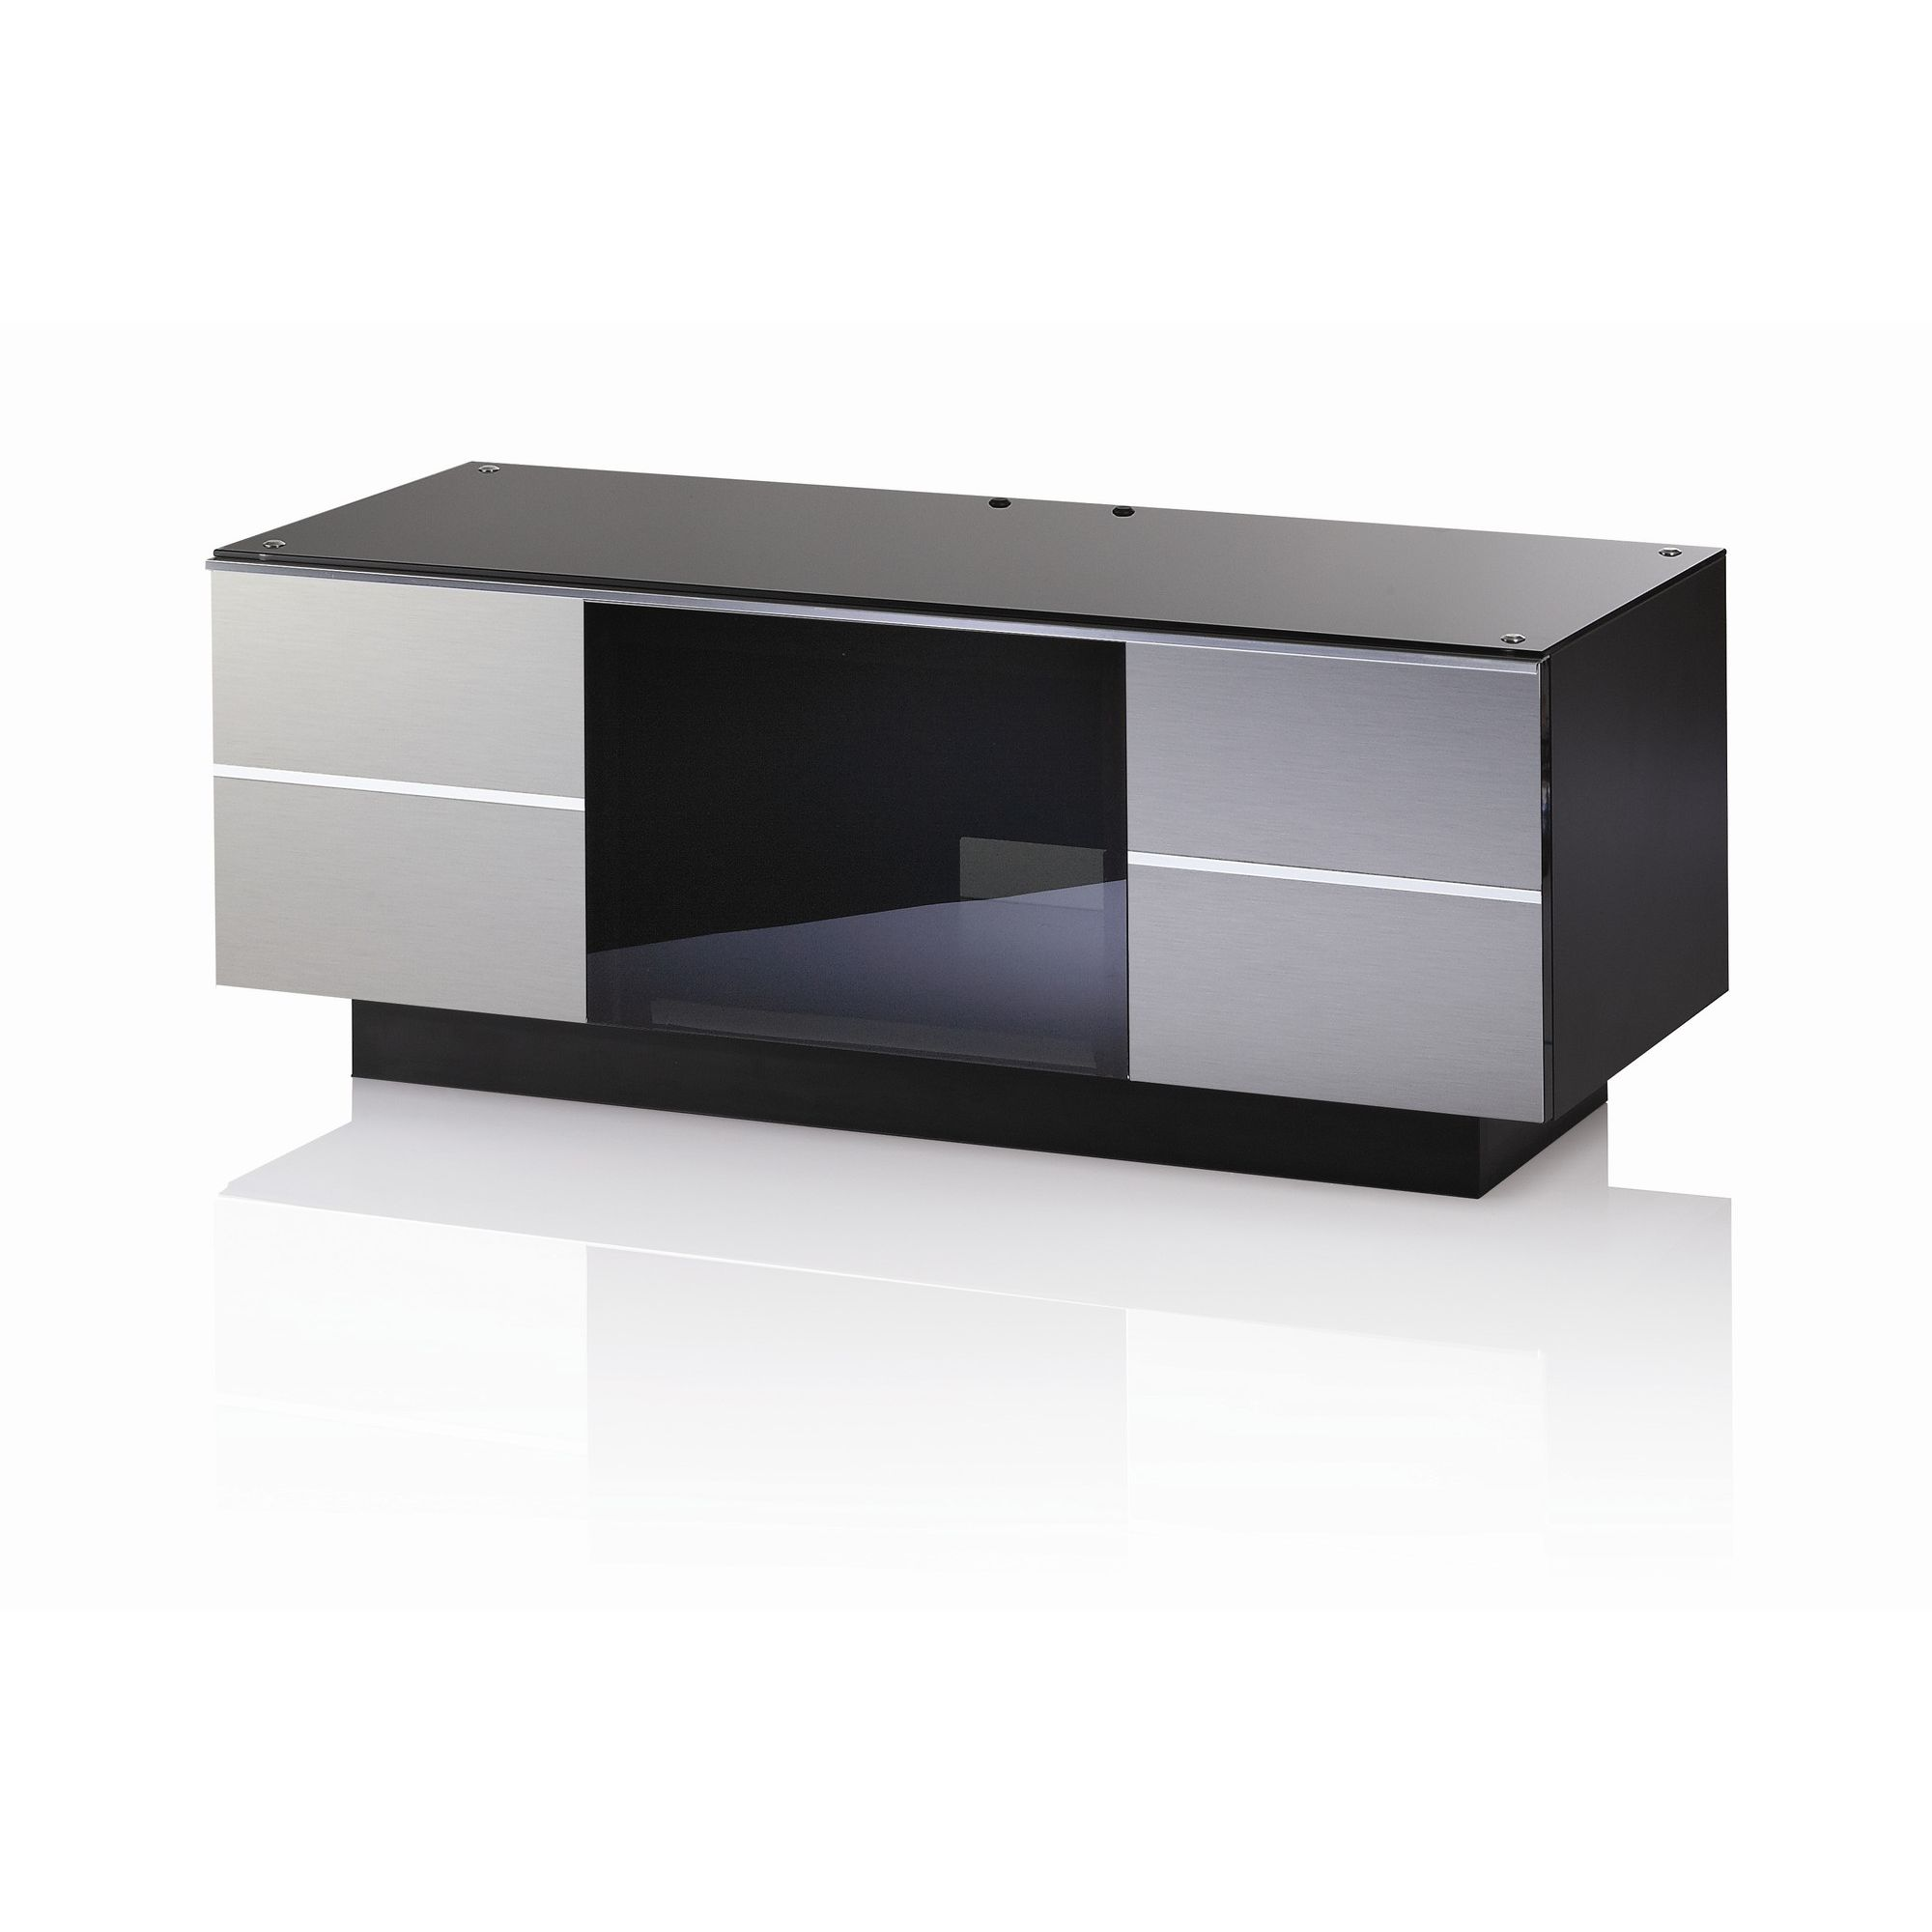 UK-CF G Series GG TV Stand - 110cm - Inox at Tesco Direct